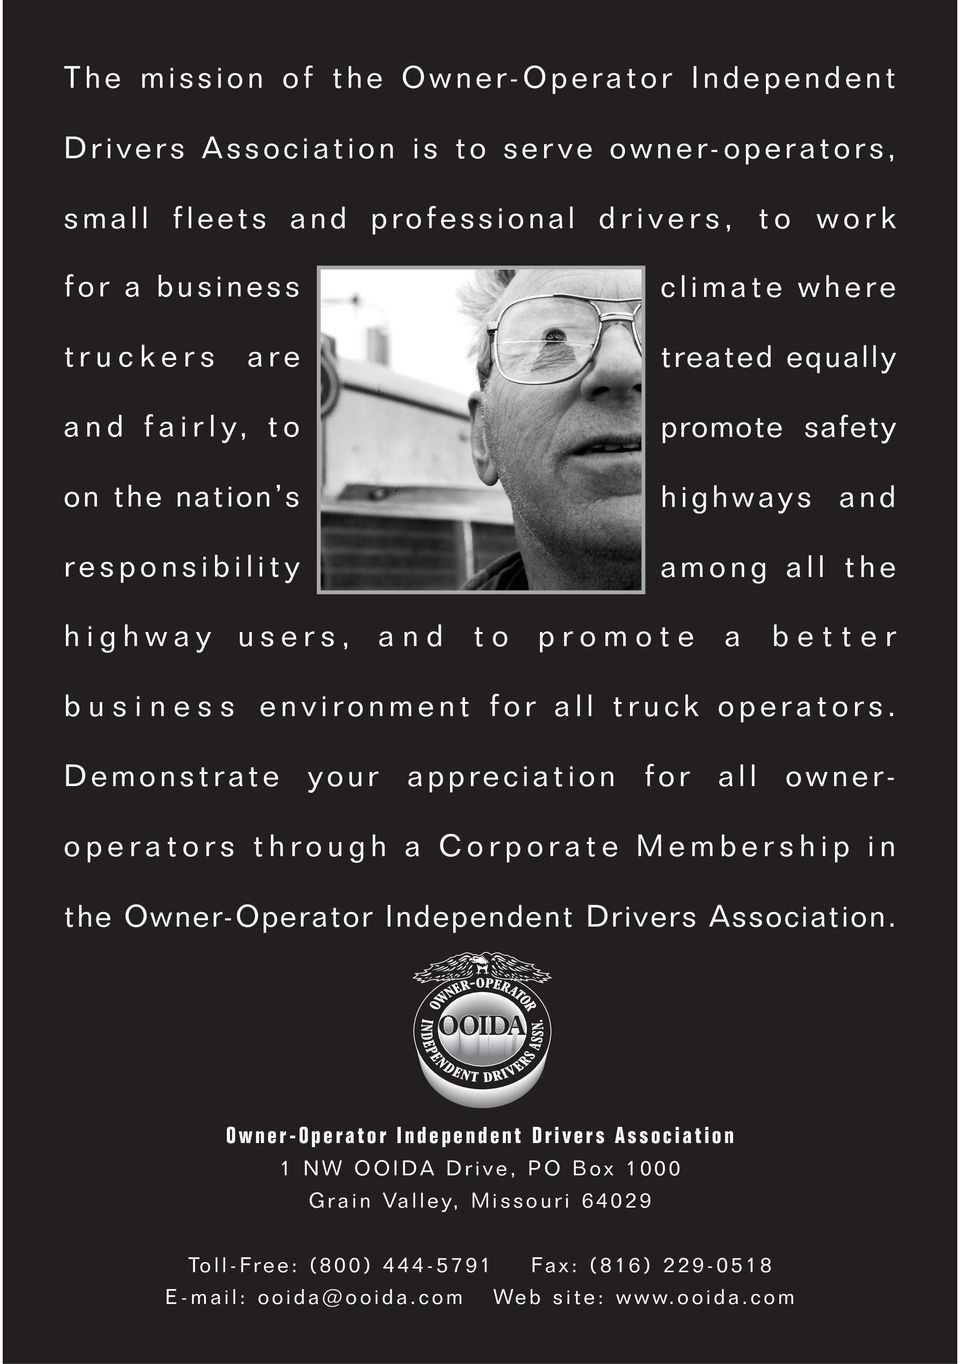 environment for all truck operators. Demonstrate your appreciation for all owneroperators through a in the Owner-Operator Independent Drivers Association.